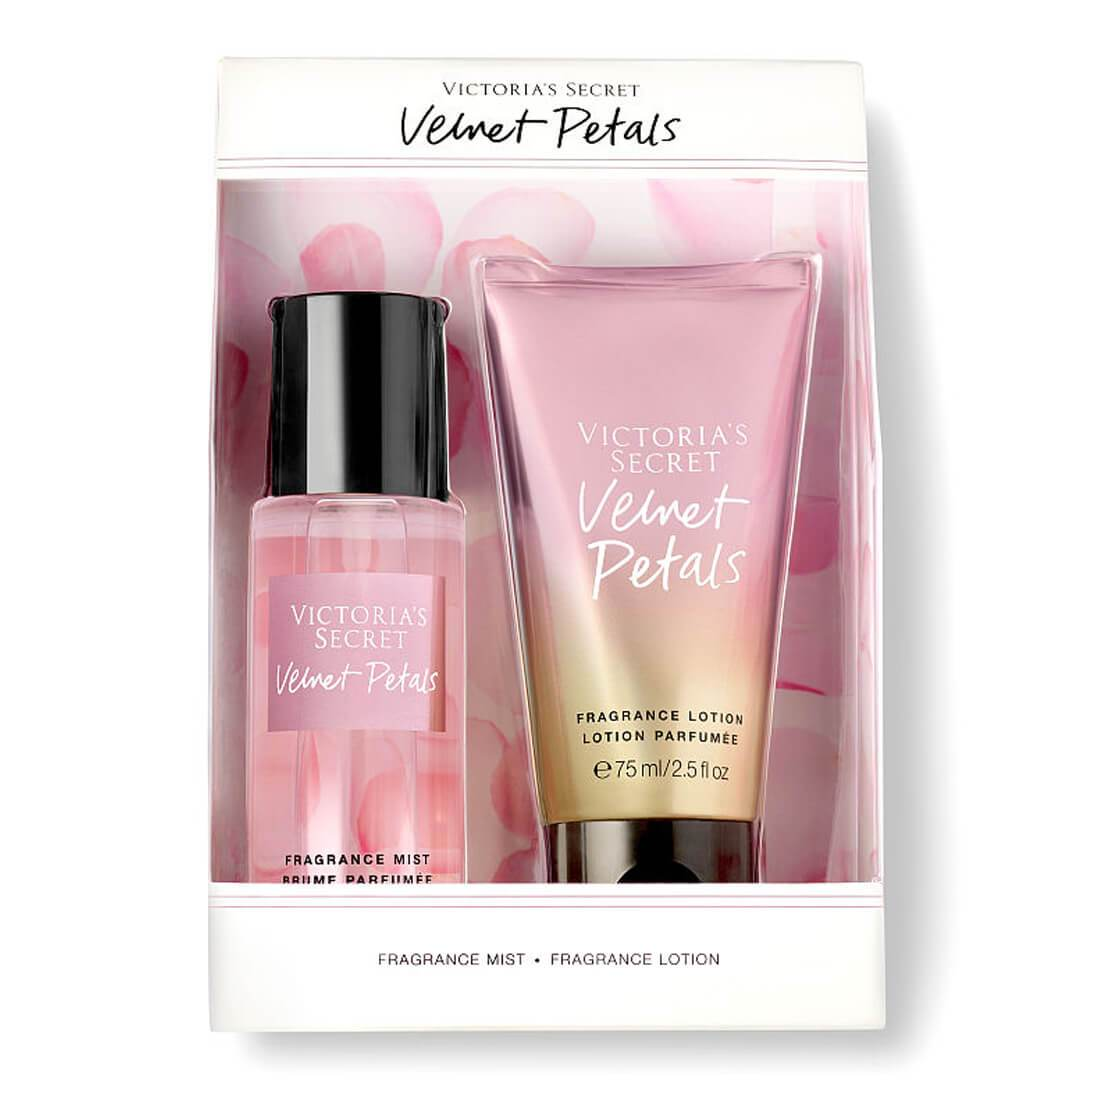 Victoria's Secret Velvet Petals Fragrance Gift Set Mist & Lotion